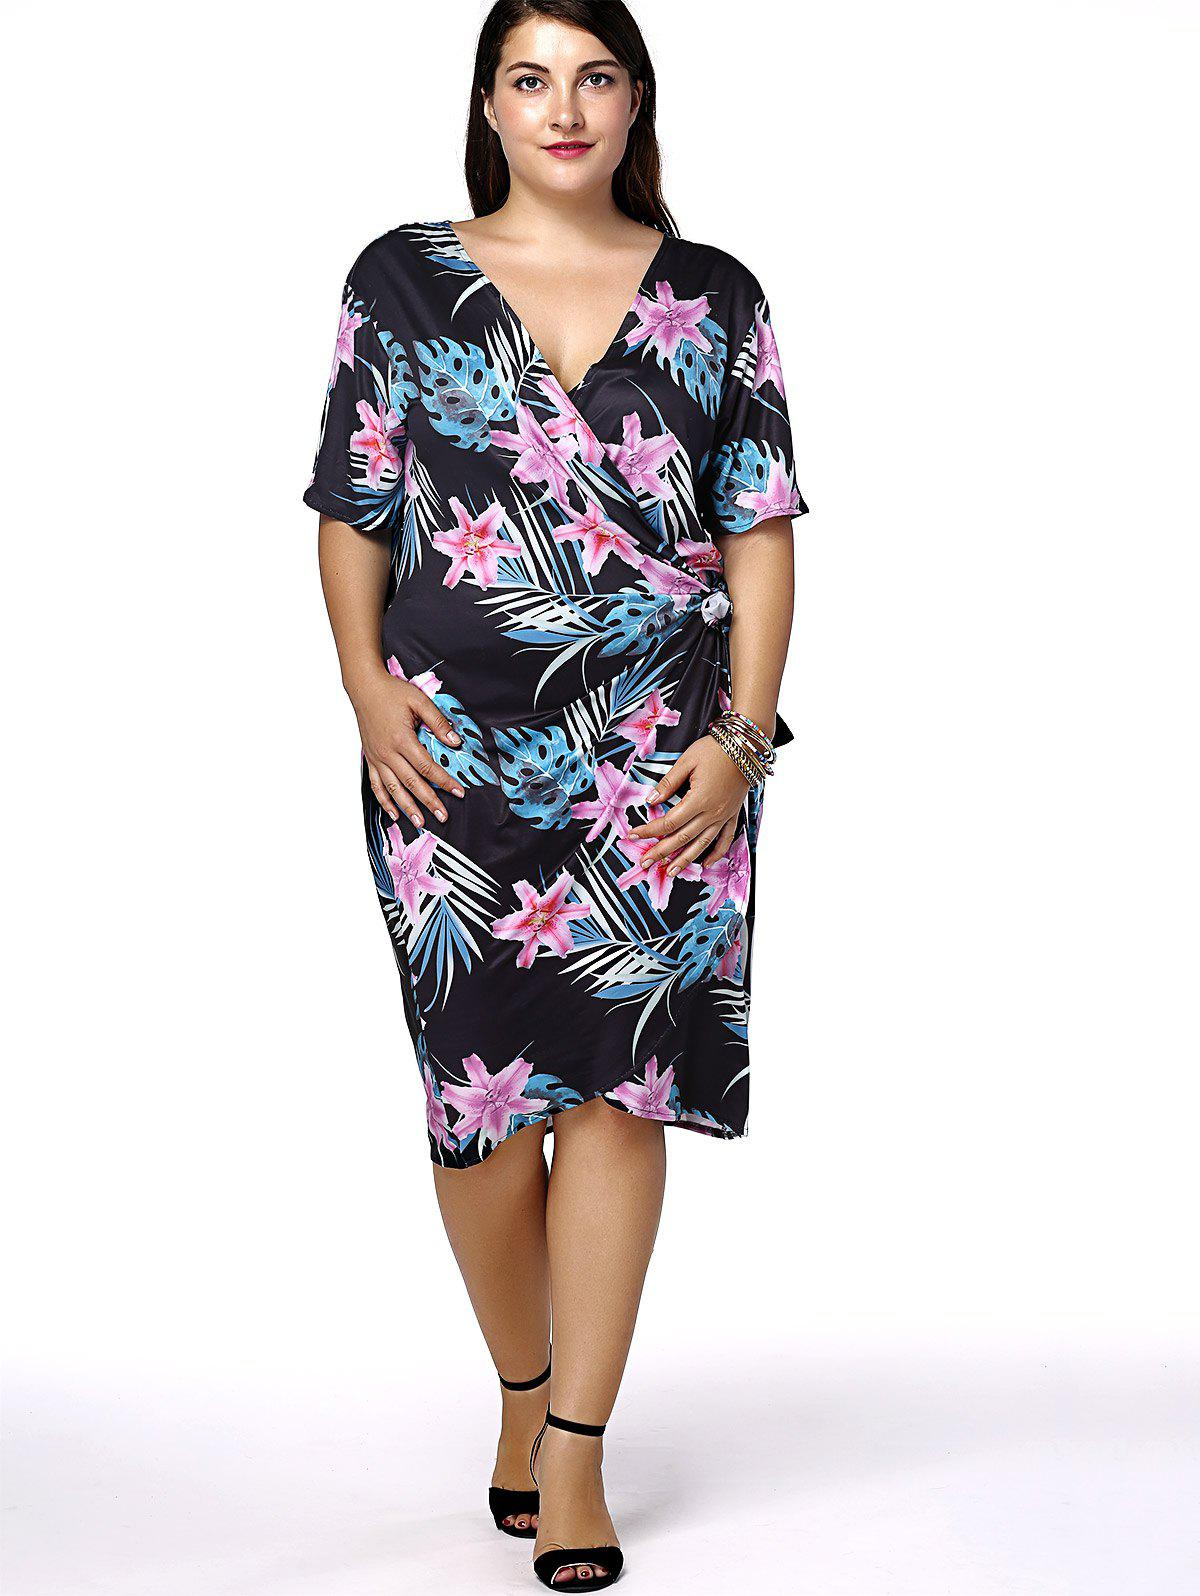 Fashionable Women's Slimming V-Neck Floral Print Plus Size Dress - BLACK 4XL